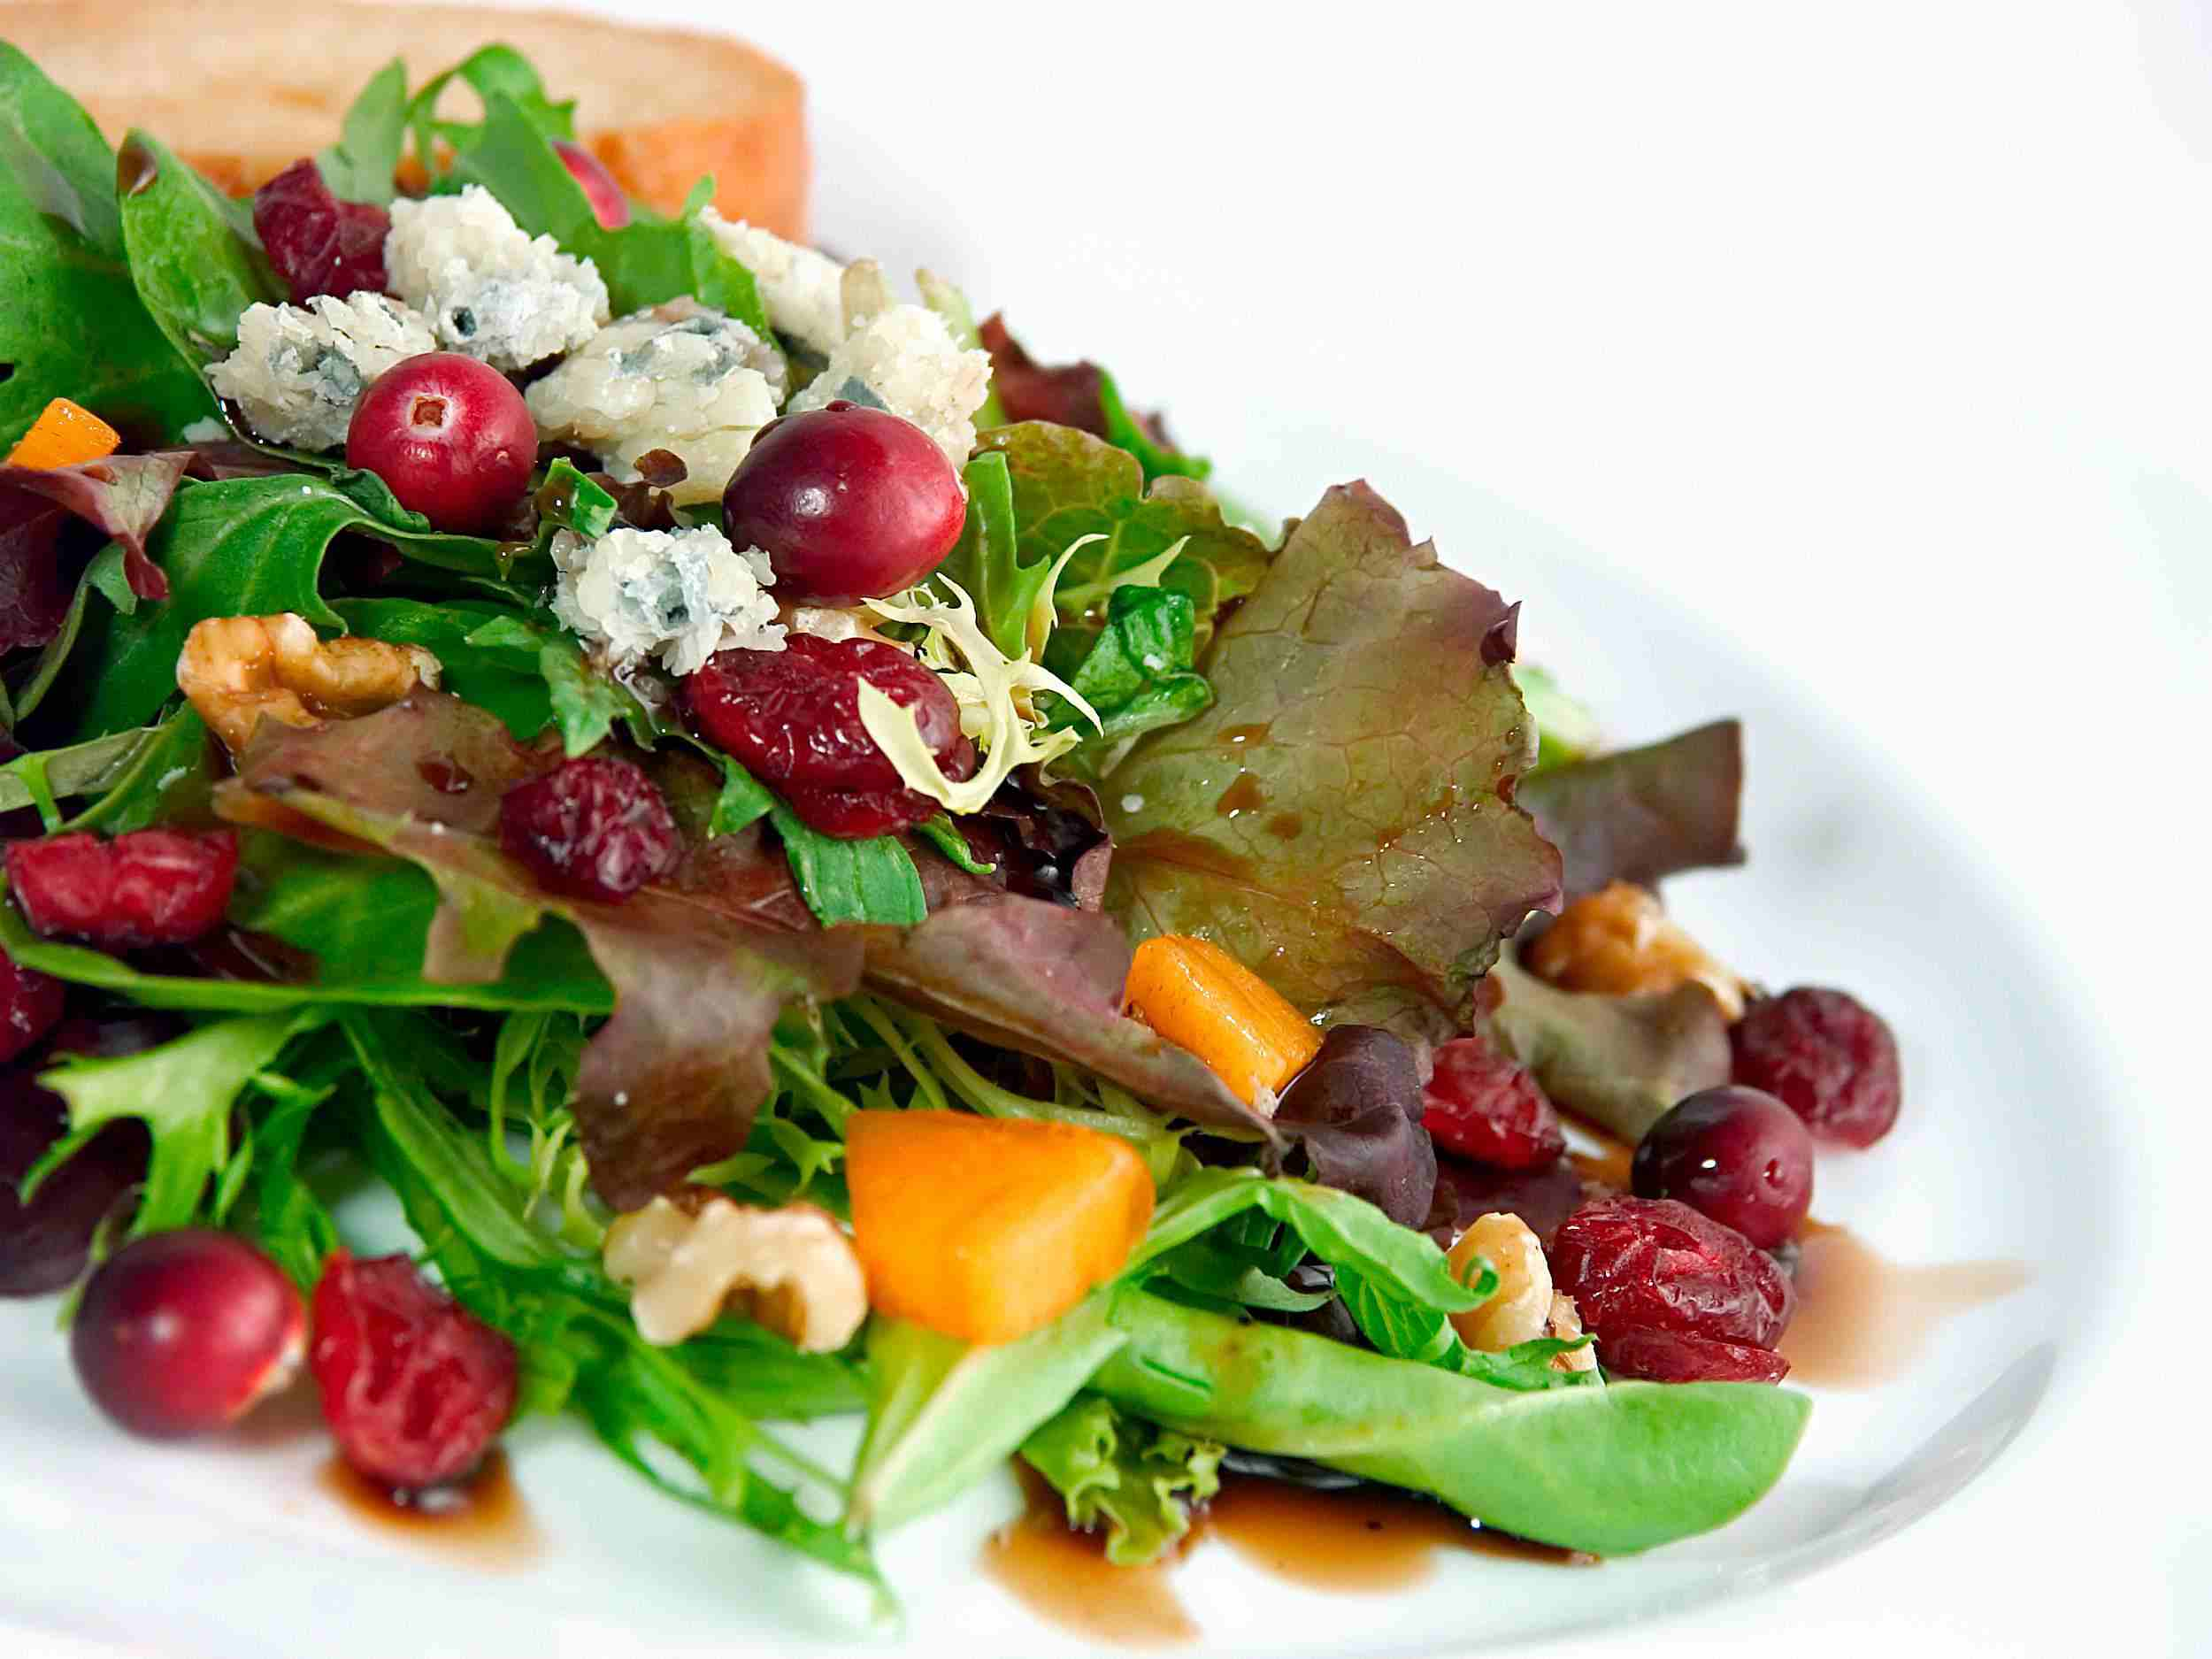 Green salad with dried cranberries and fig balsamic dressing on a plate